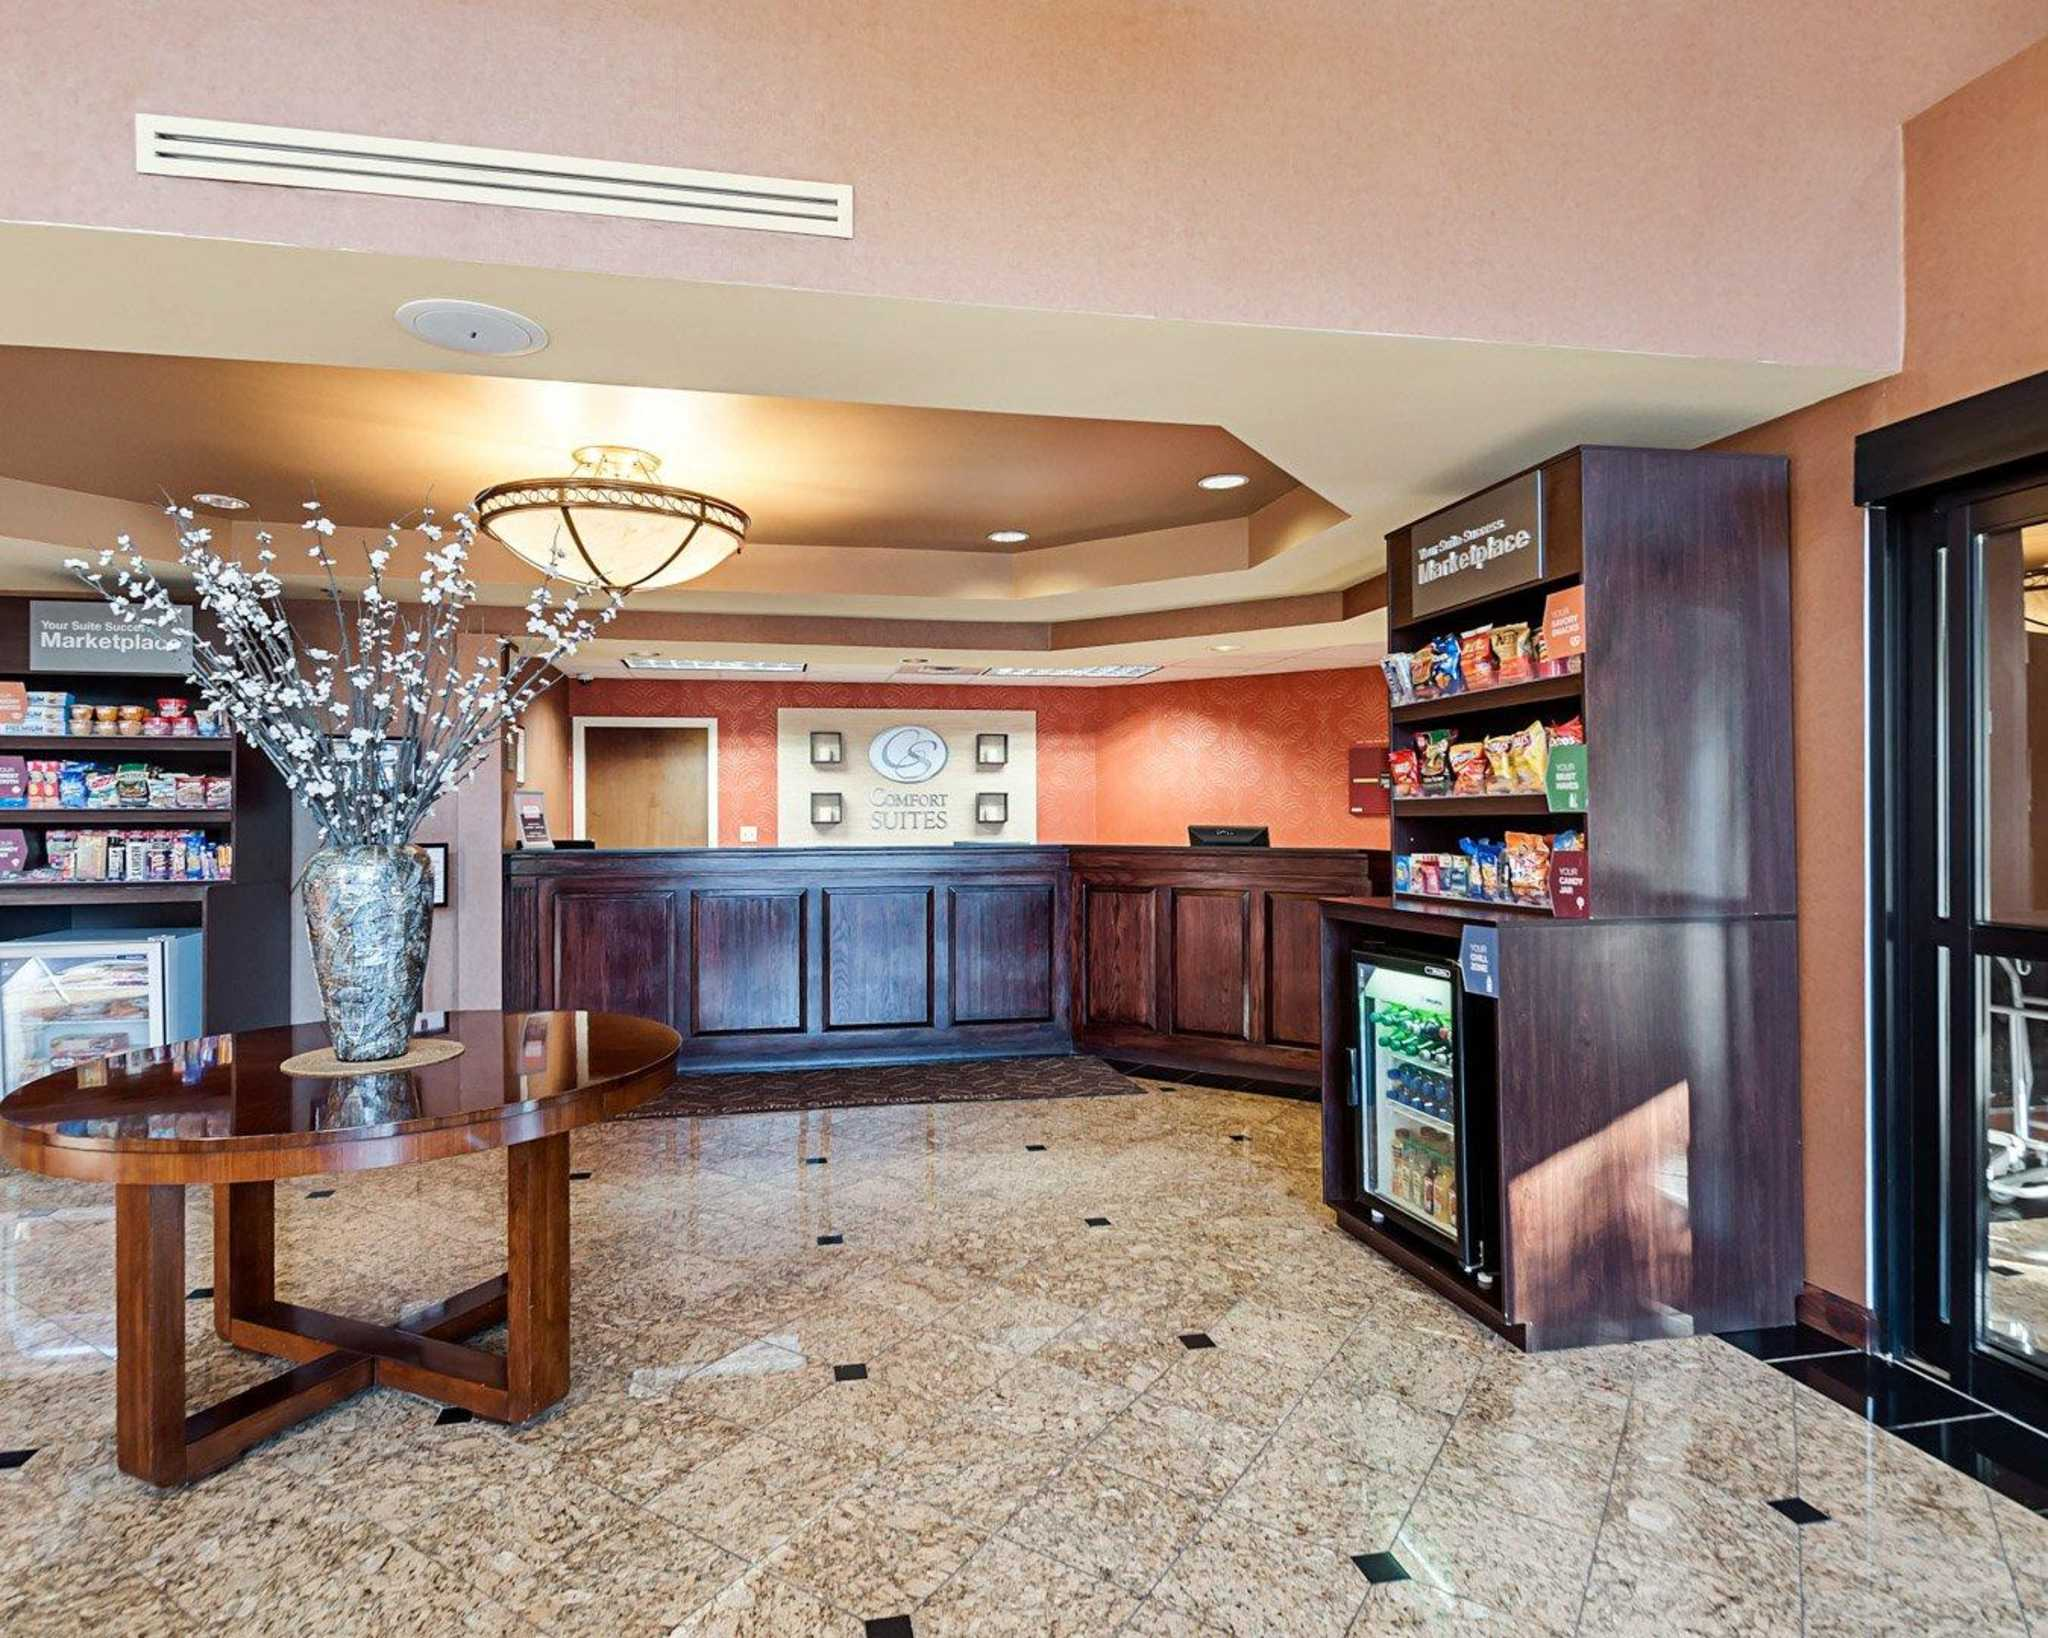 Comfort Suites Dulles Airport image 9